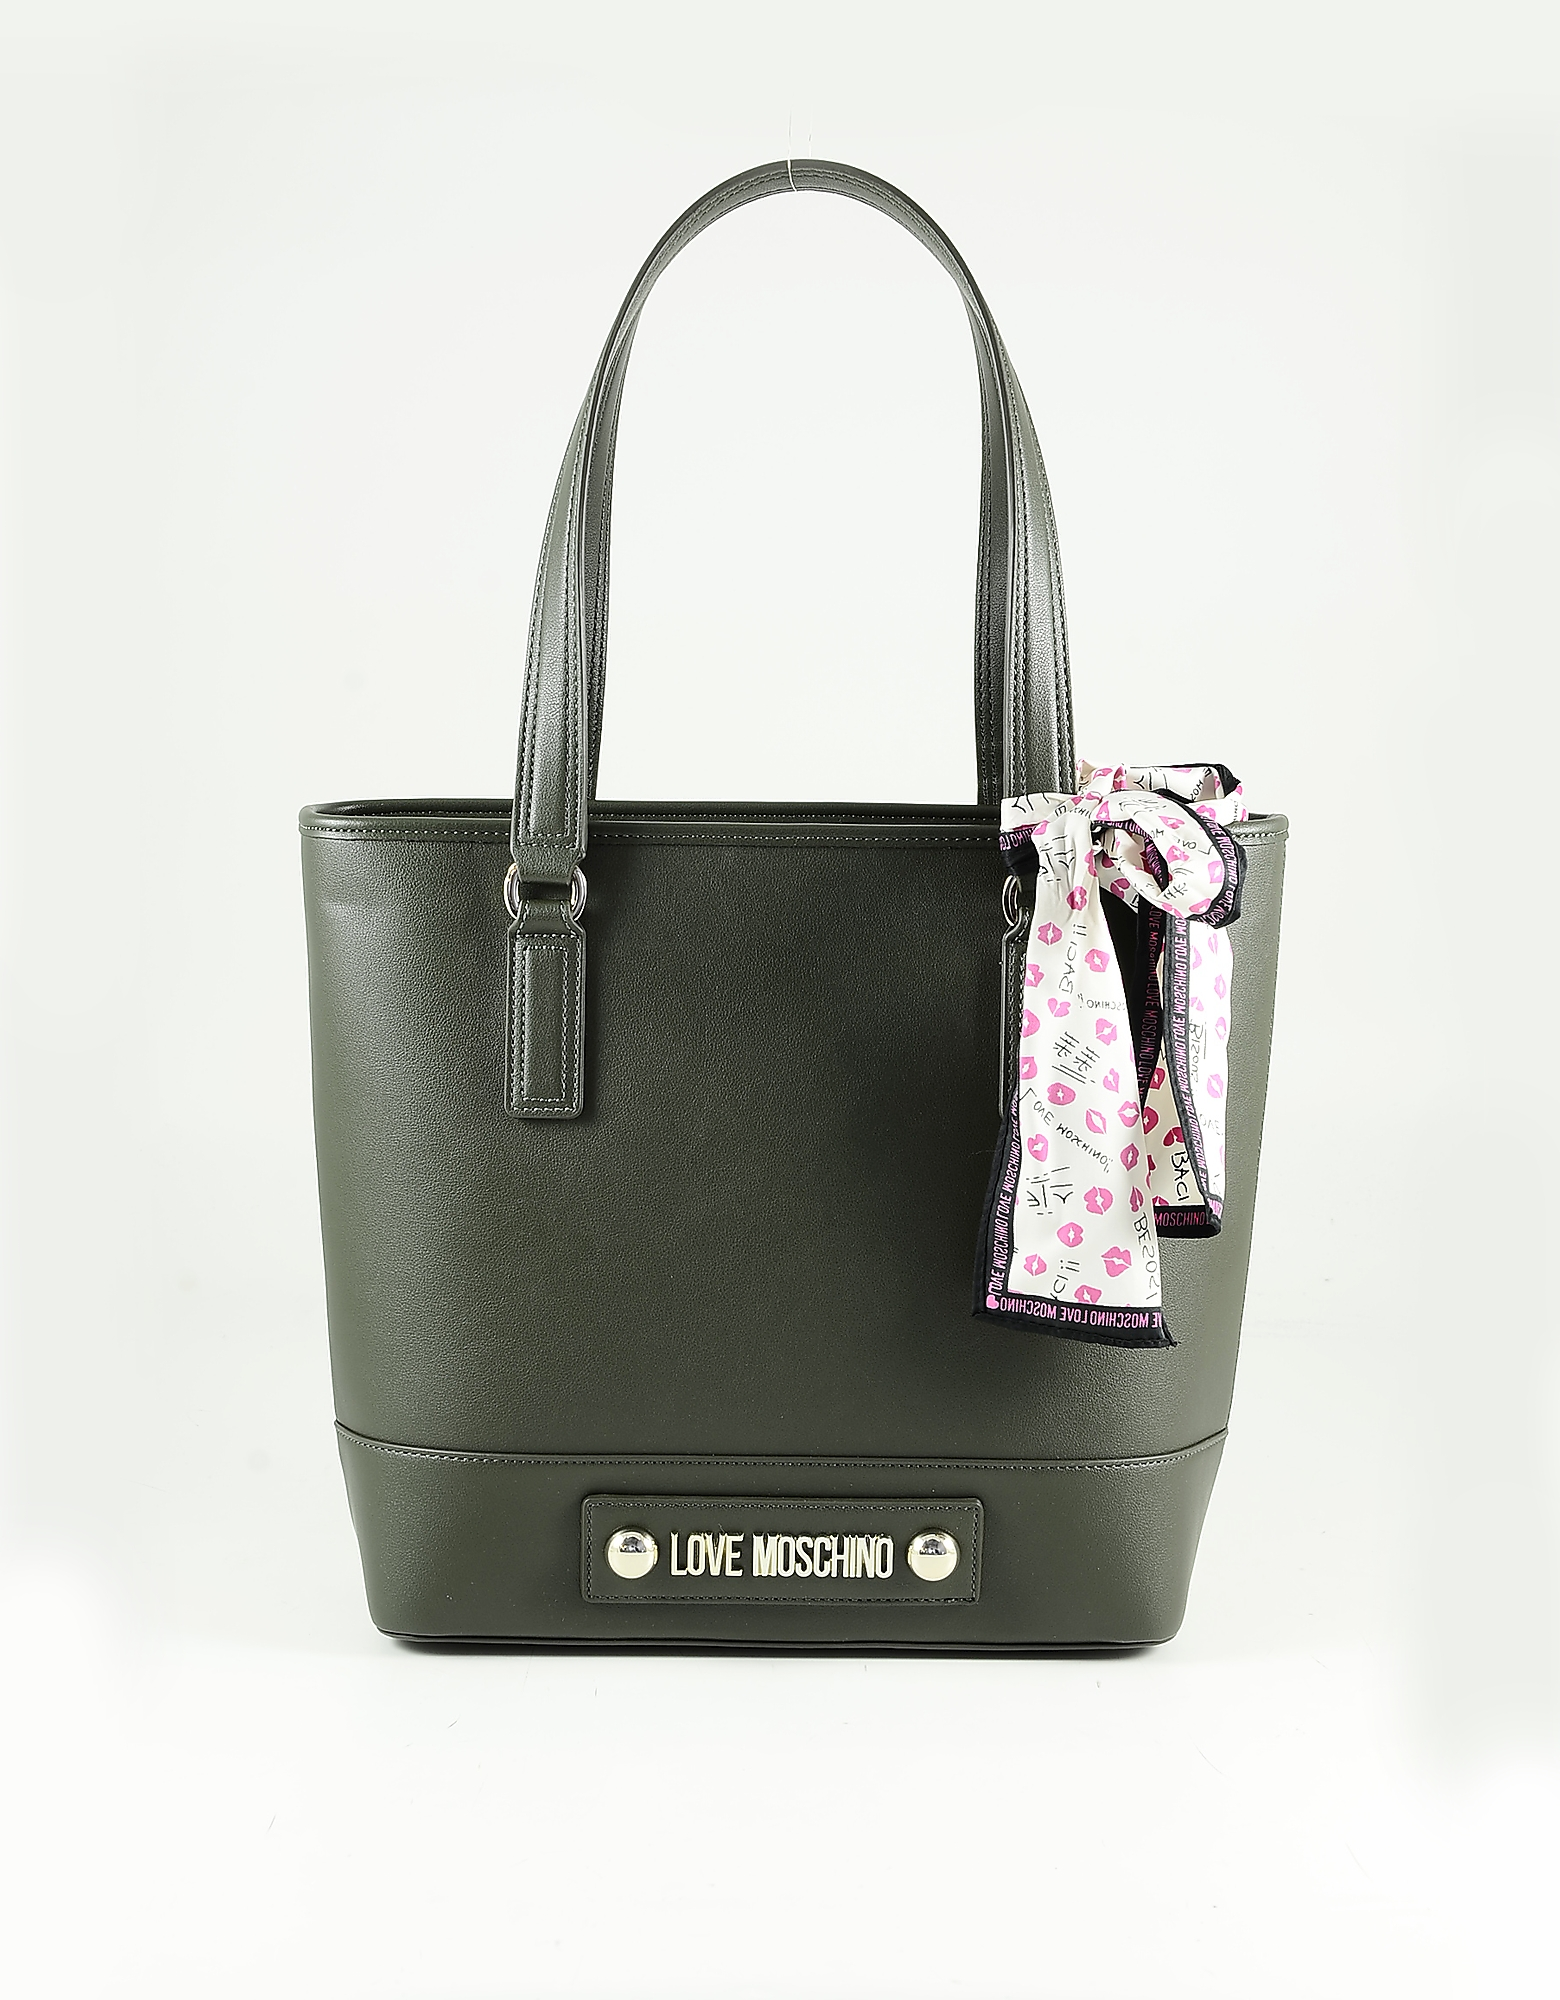 Love Moschino Green Eco Leather Scarf Tote Bag